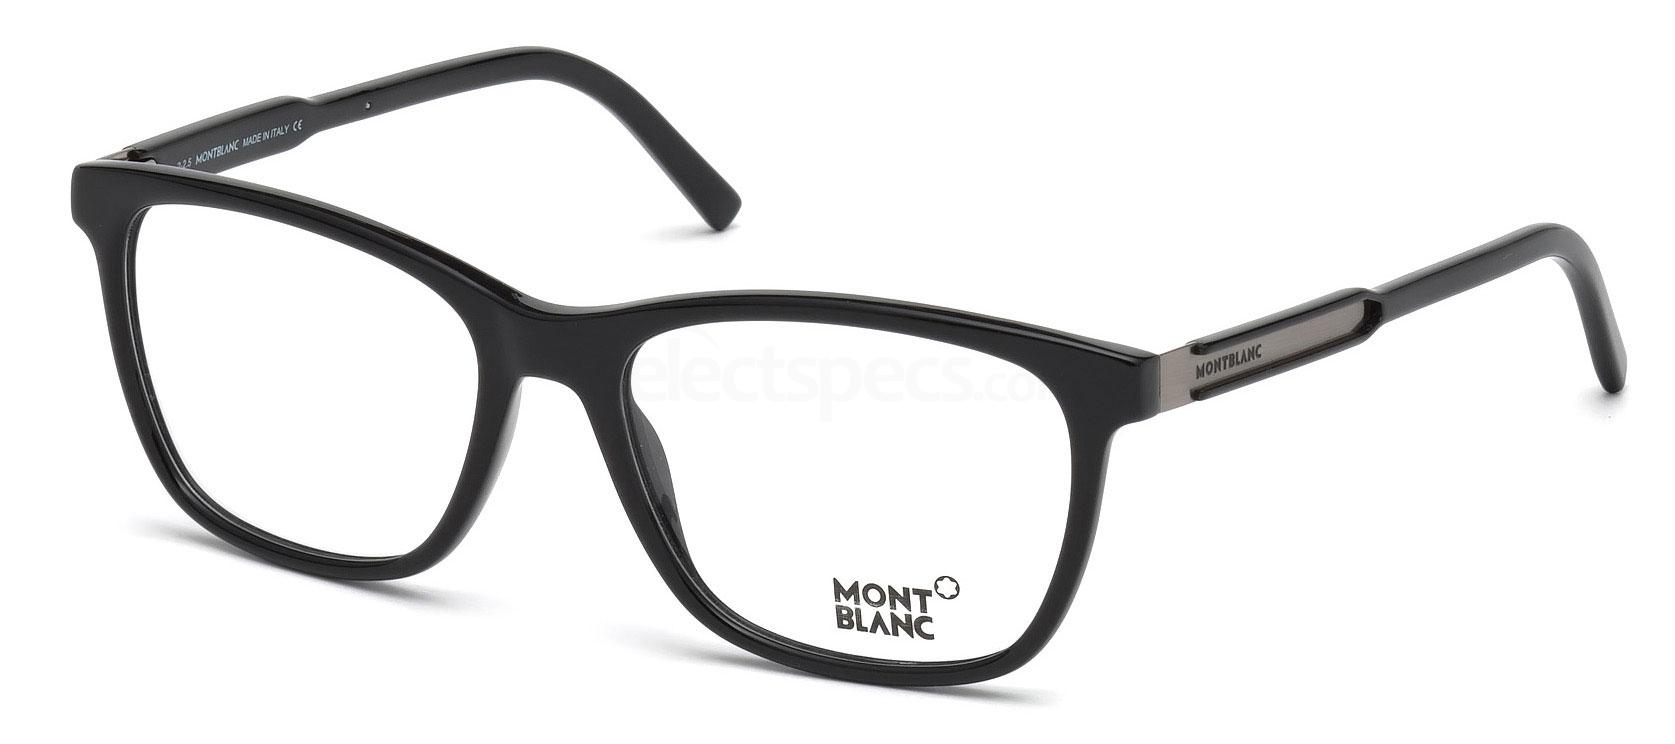 001 MB0631 Glasses, Mont Blanc